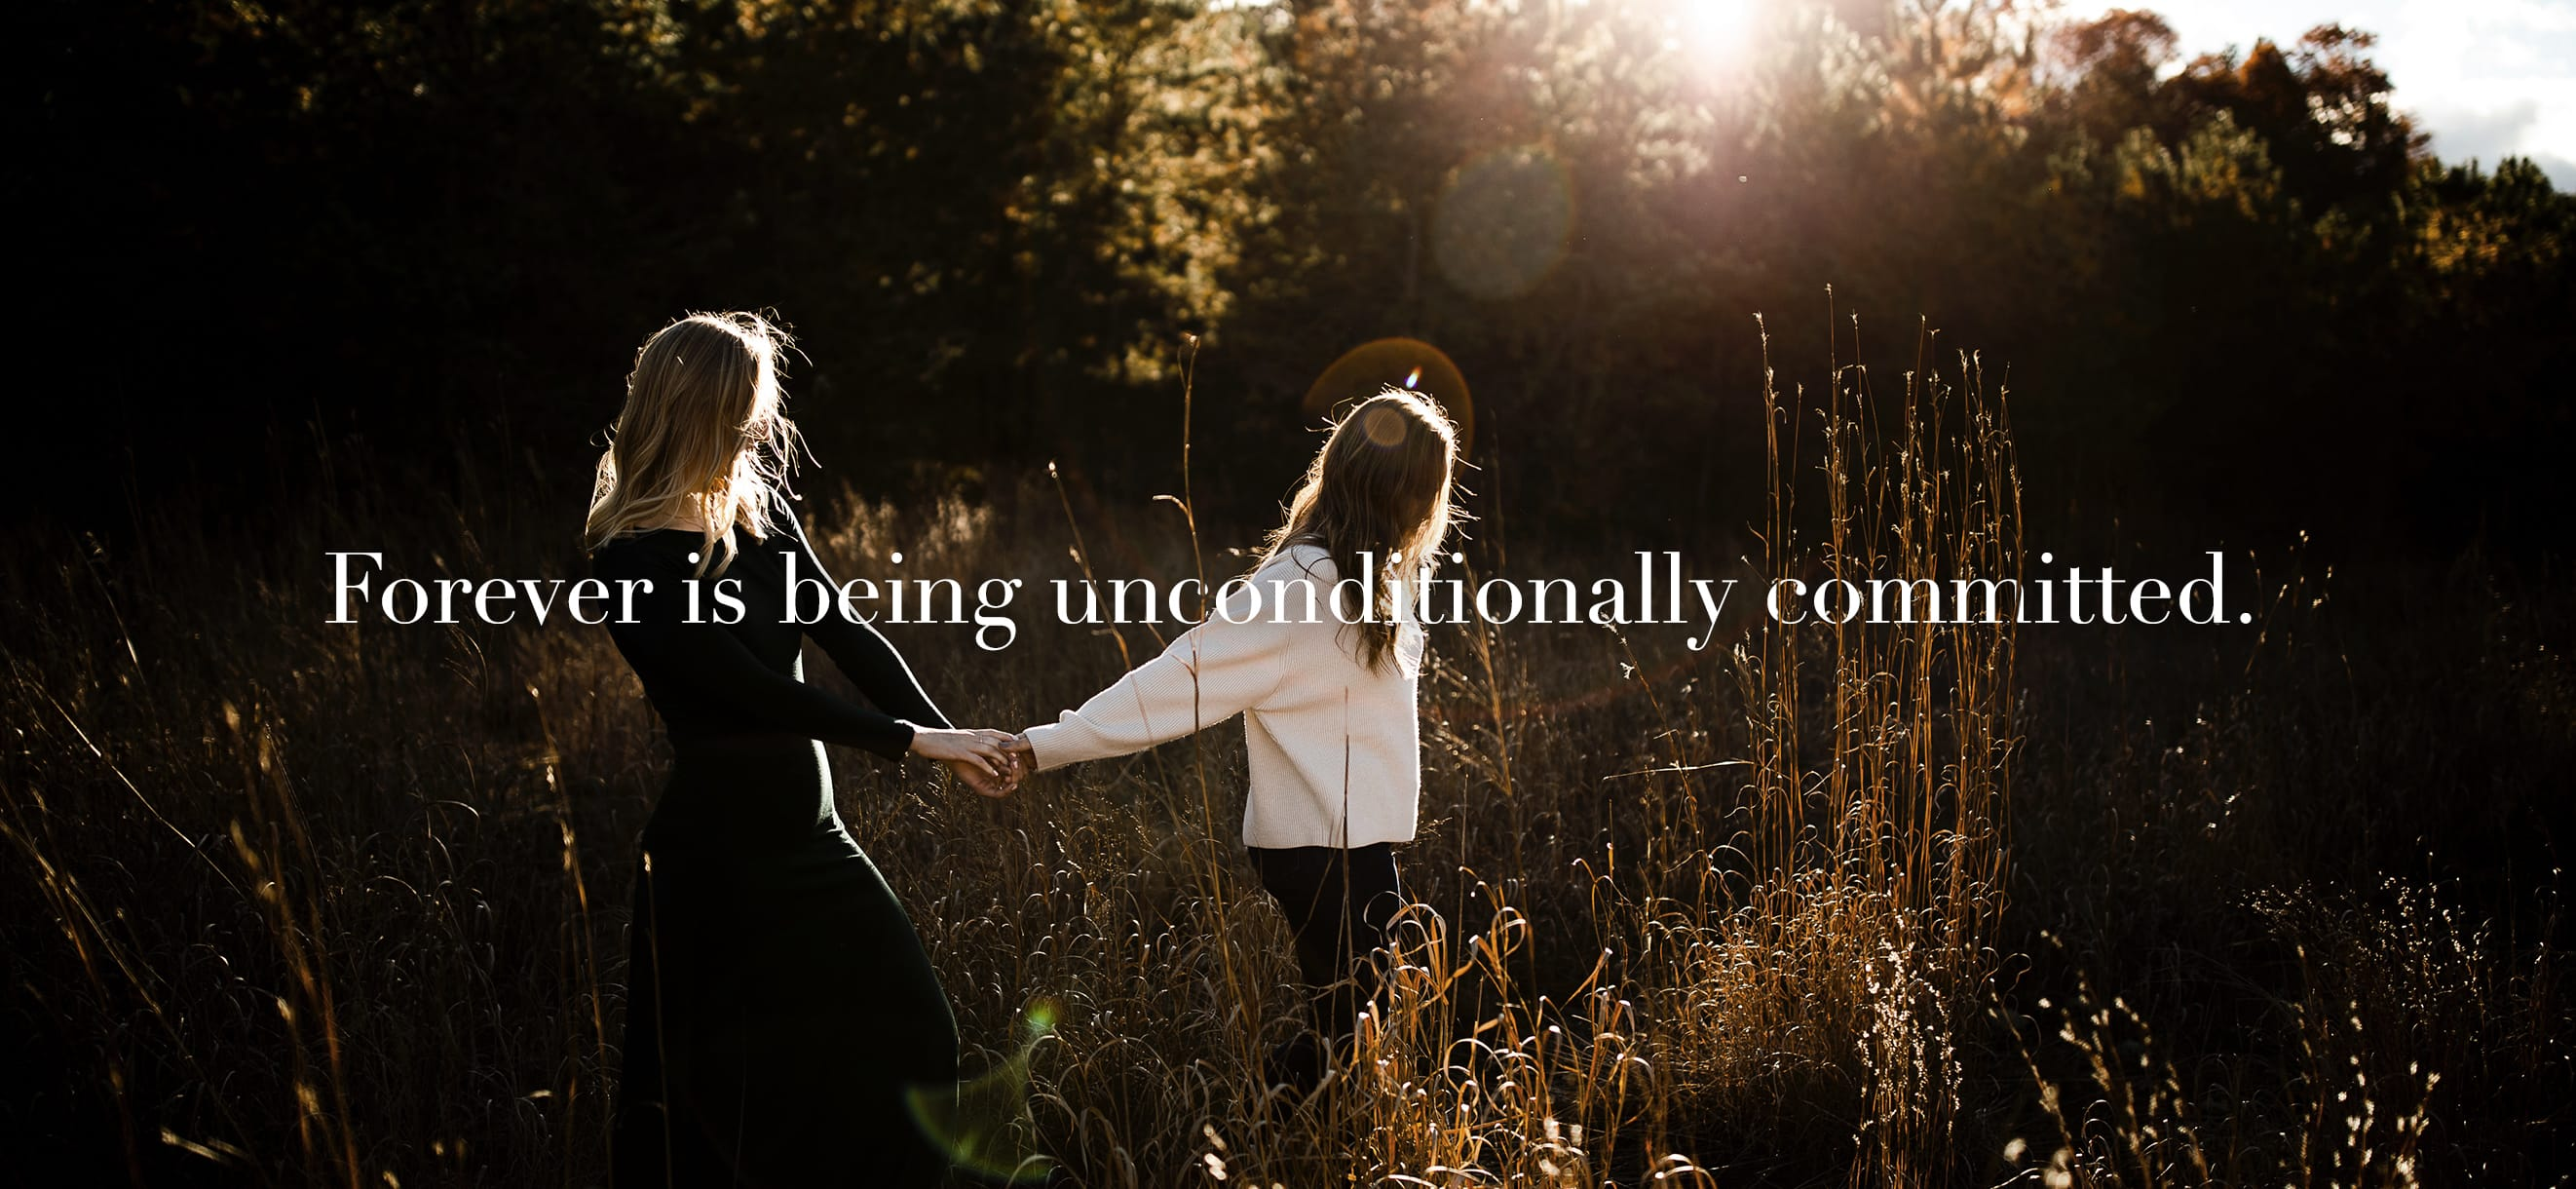 Forever is being unconditionally committed.